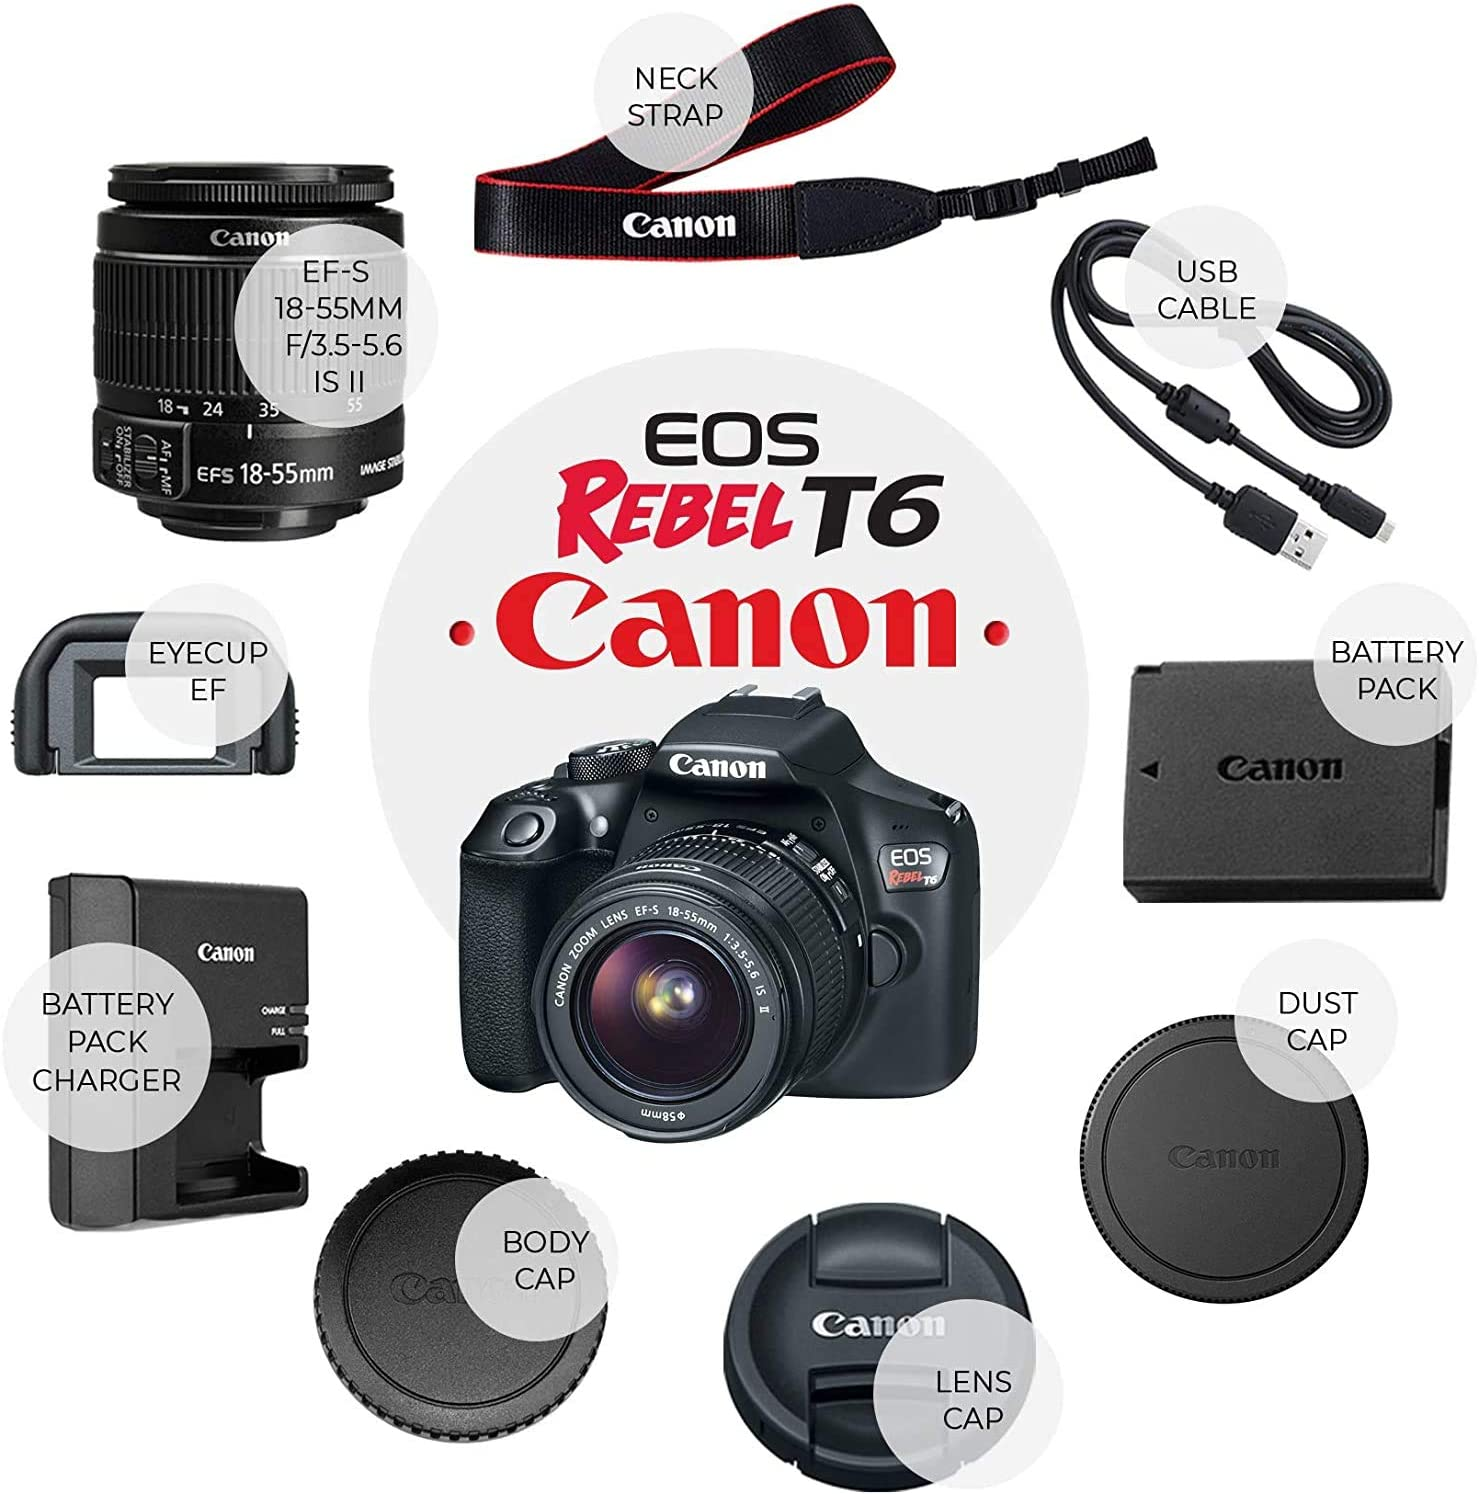 (Renewed) Canon EOS Rebel T6 Digital SLR Camera with 18-55mm EF-S f/3.5-5.6 is II Lens + 58mm Wide Angle Lens + 2X Telephoto Lens + Flash + 2X 32GB Memory + Tripod + Full Accessory Bundle